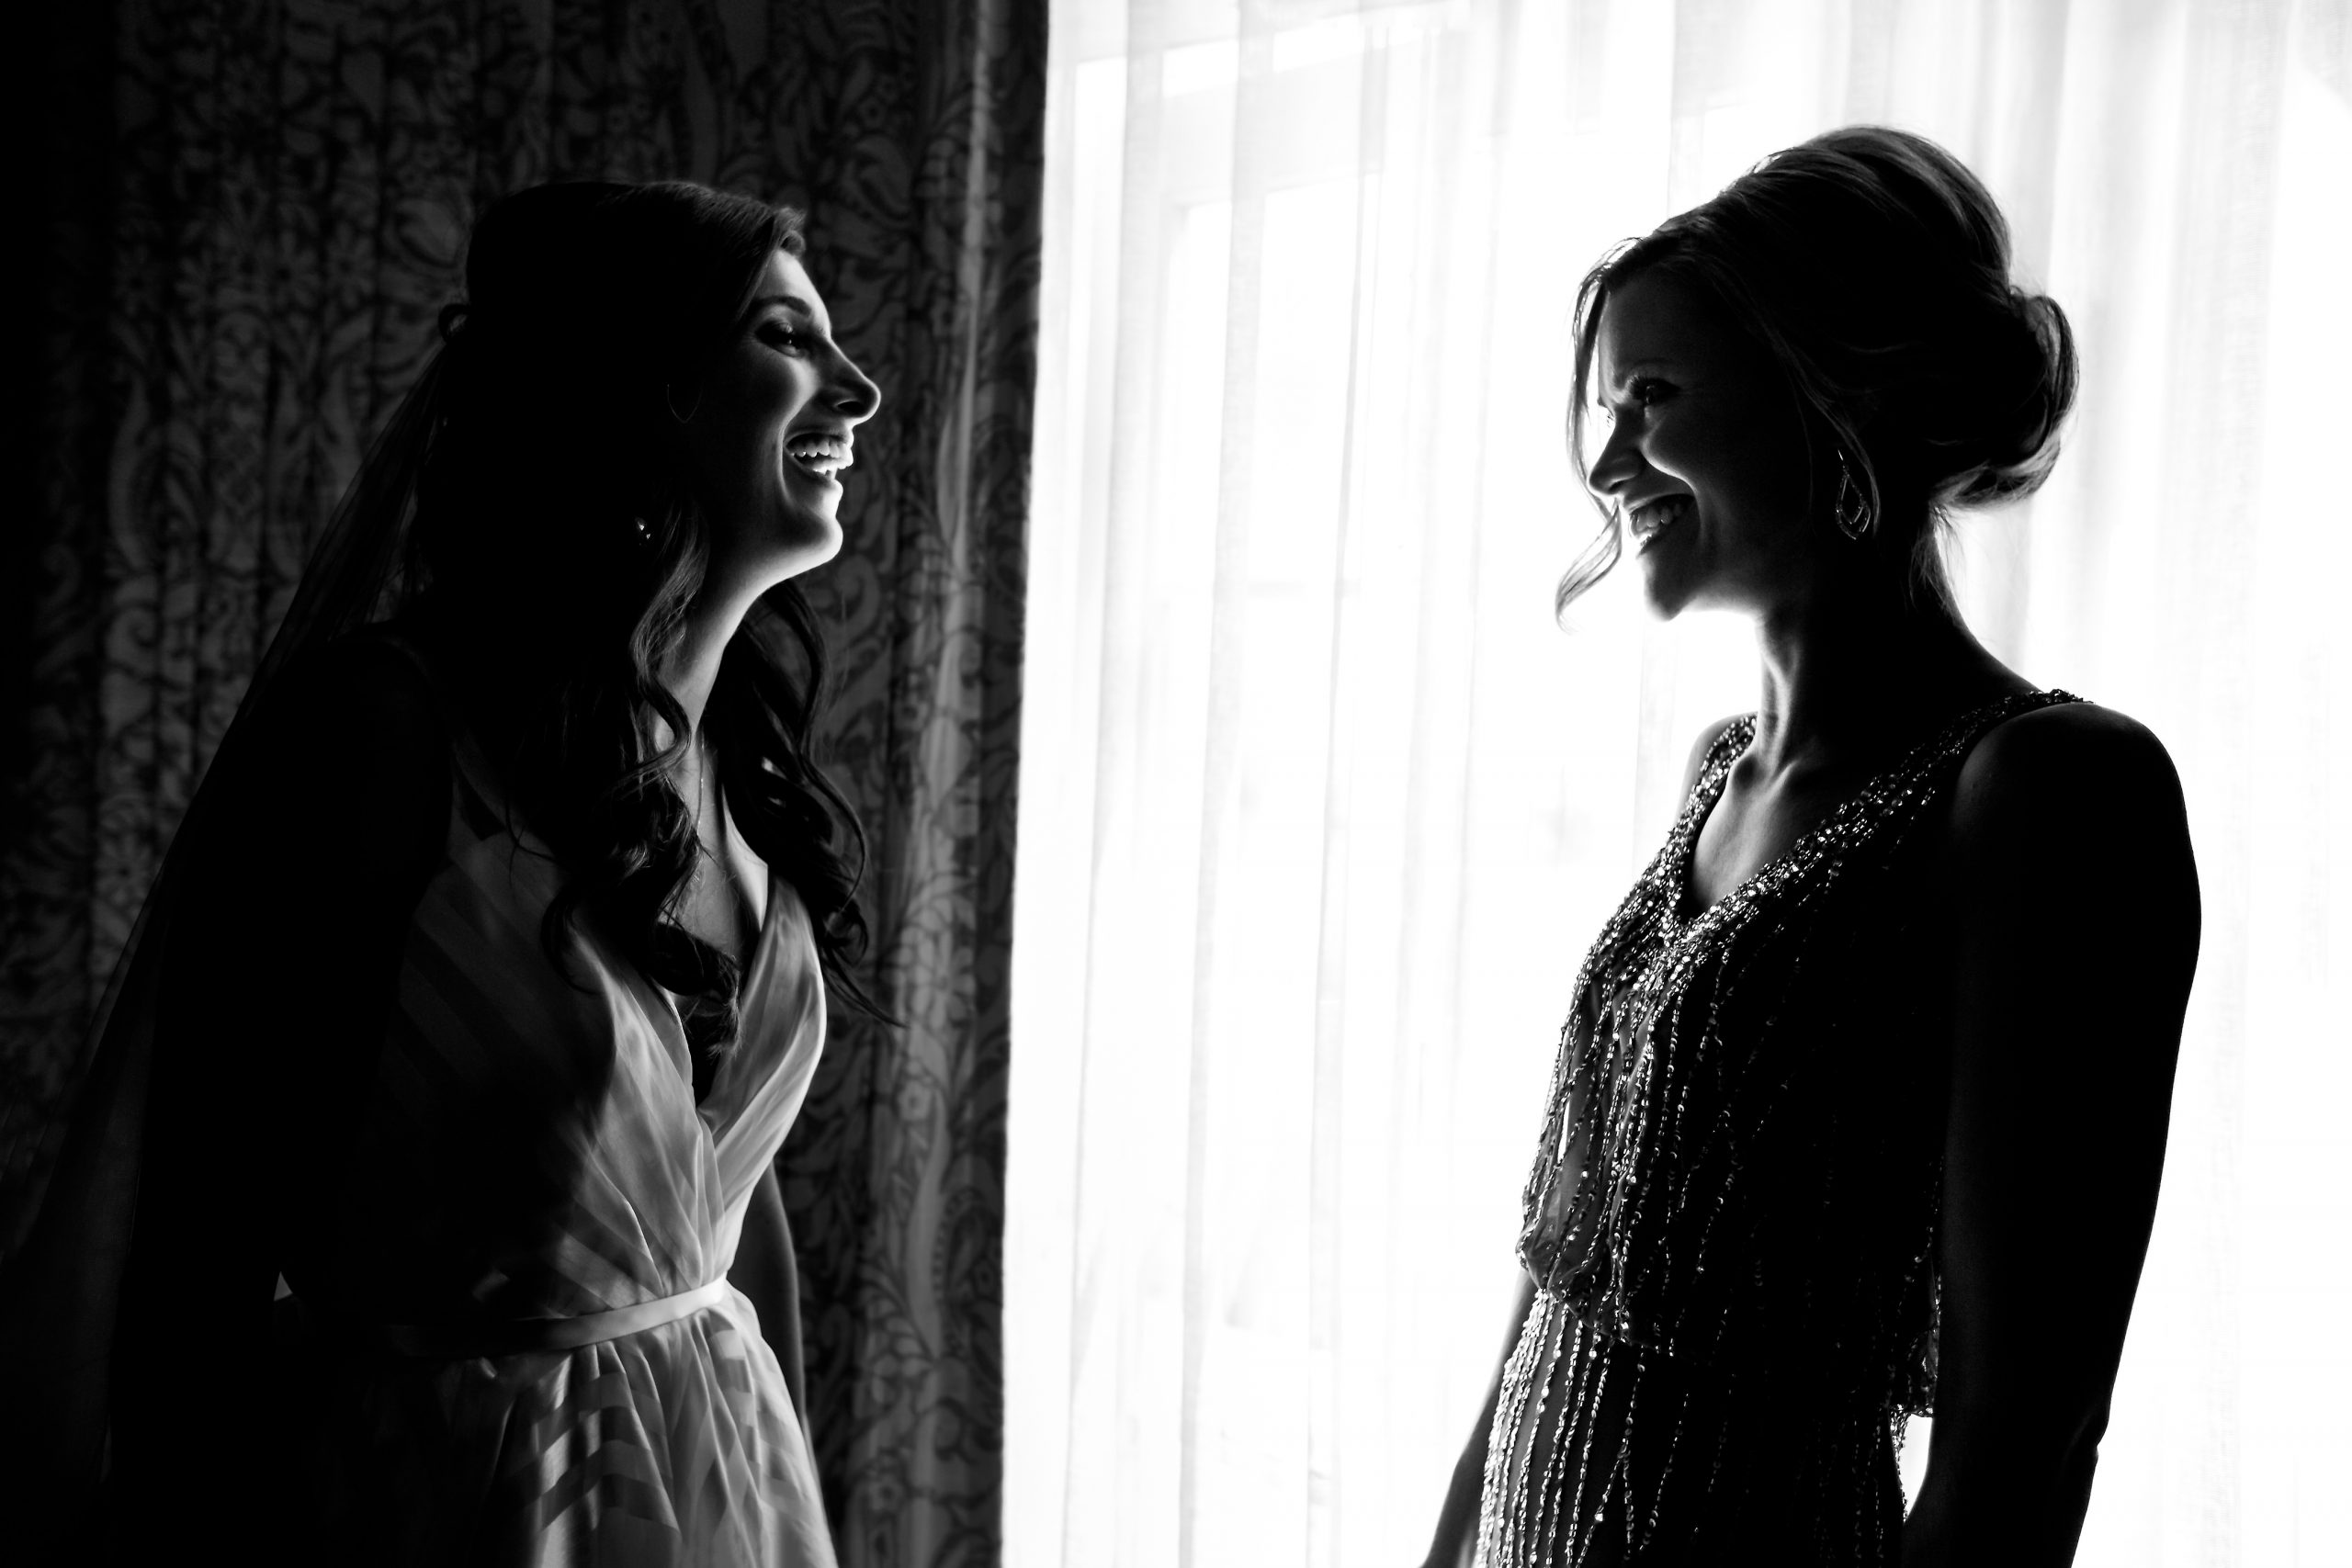 Bride and her friend smile together